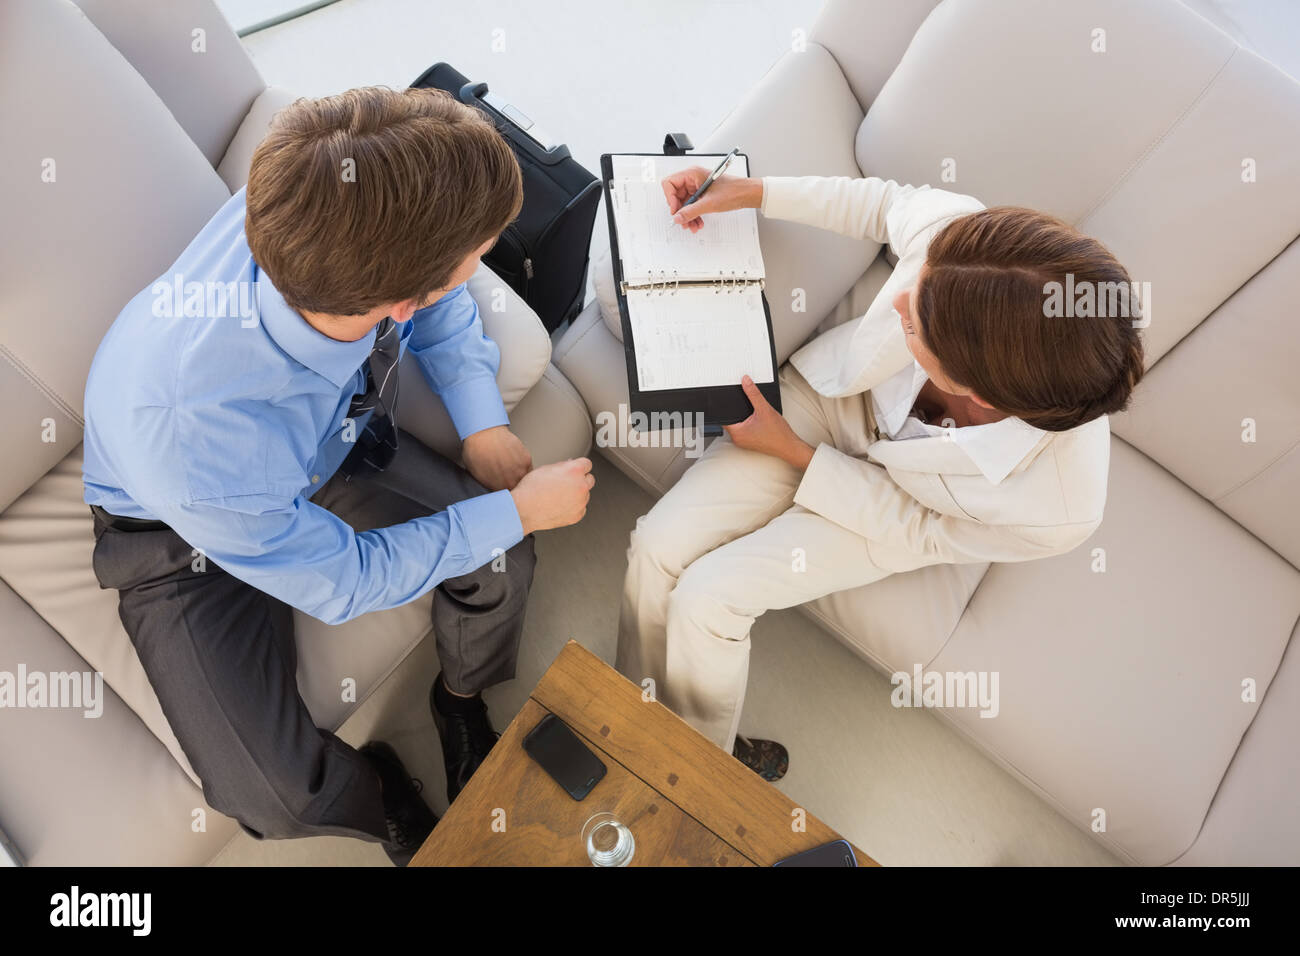 Business team working together on the couch scheduling in diary - Stock Image